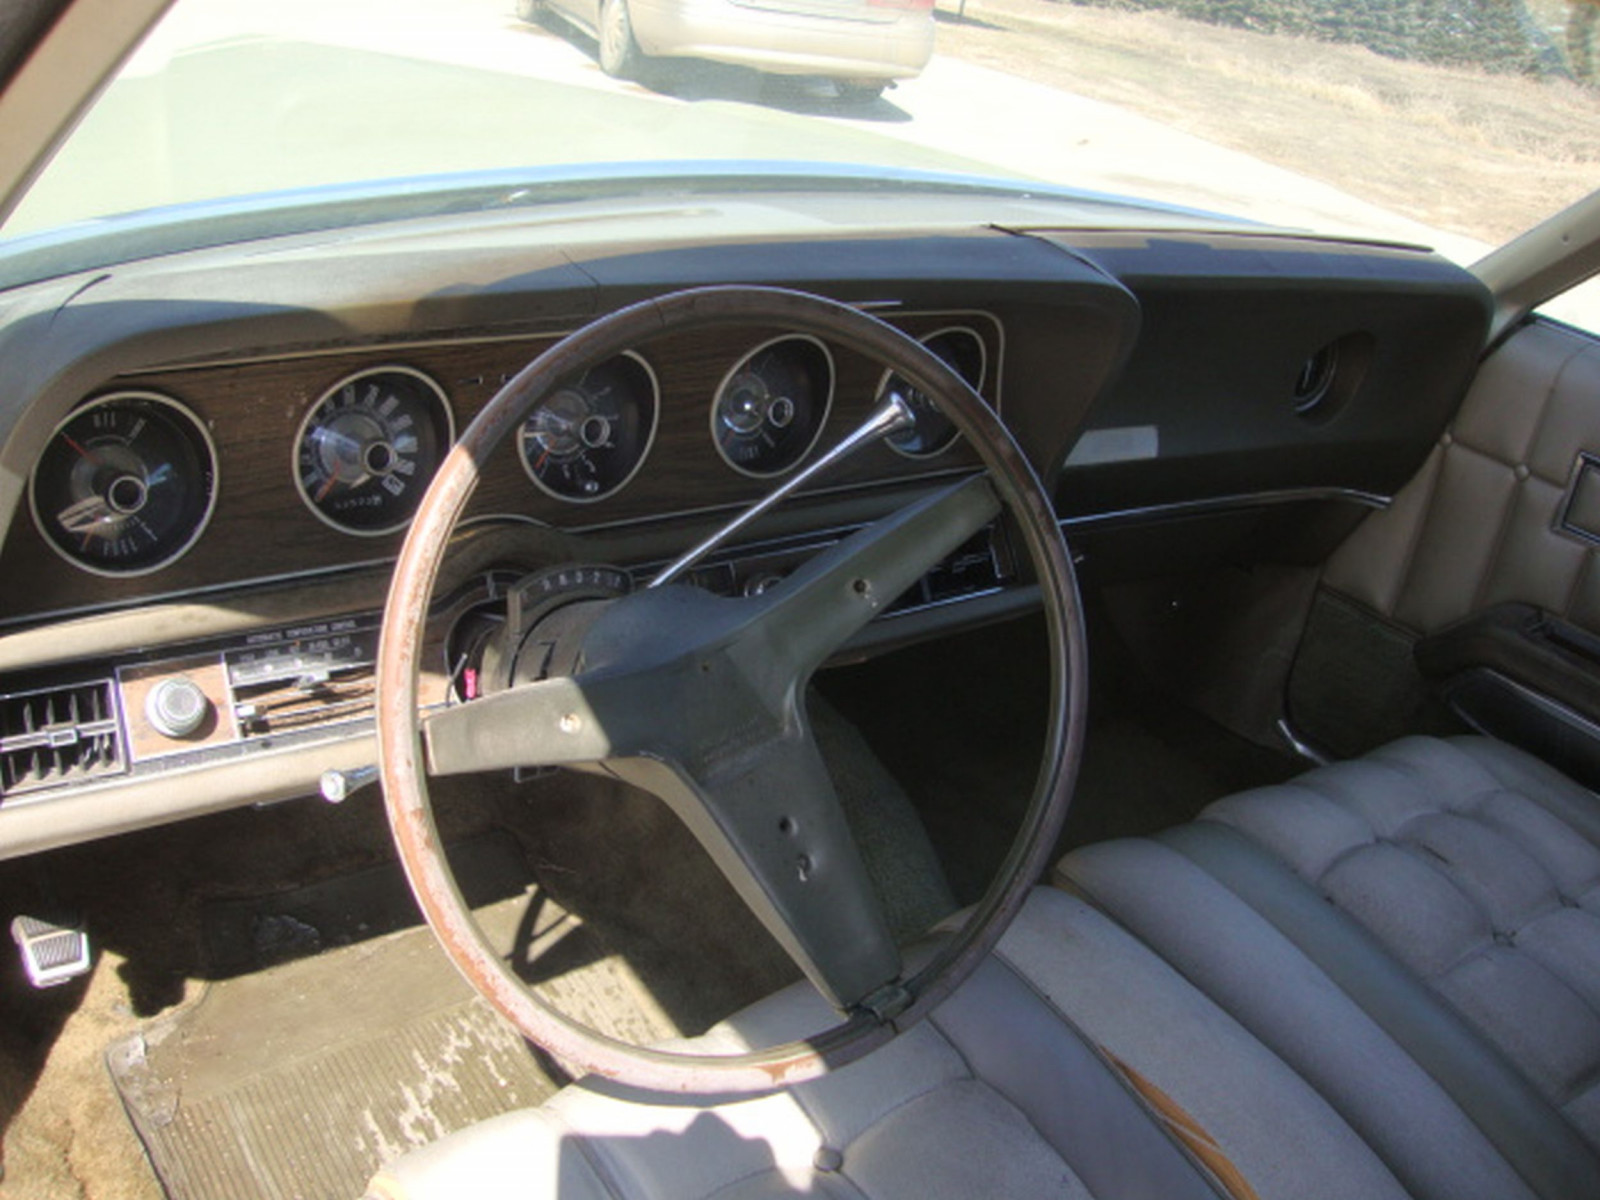 1971 Ford Thunderbird 4dr Sedan - Image 10